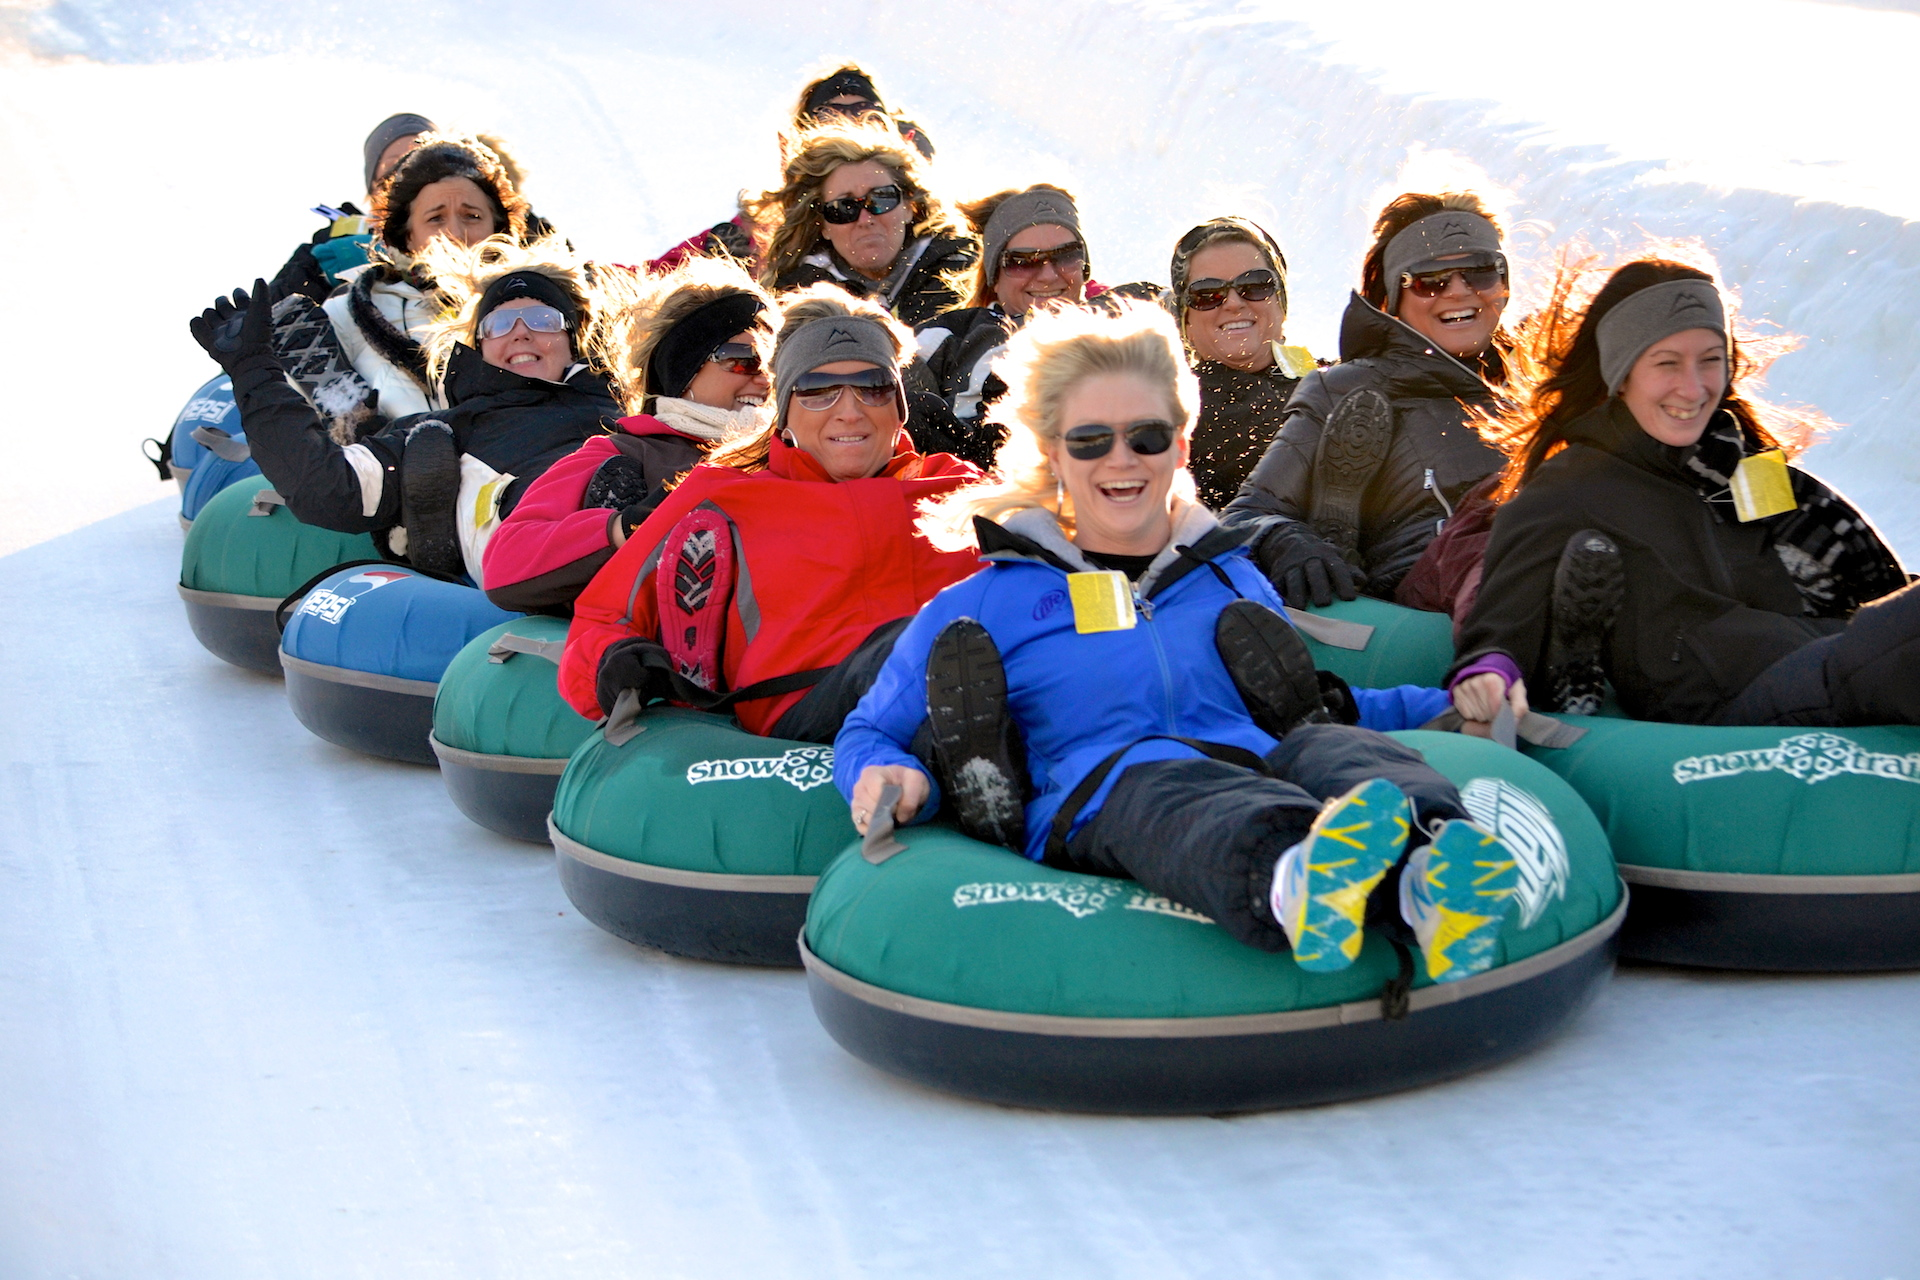 Longest-Tubing-Lanes-In-Ohio-at-Snow-Trails